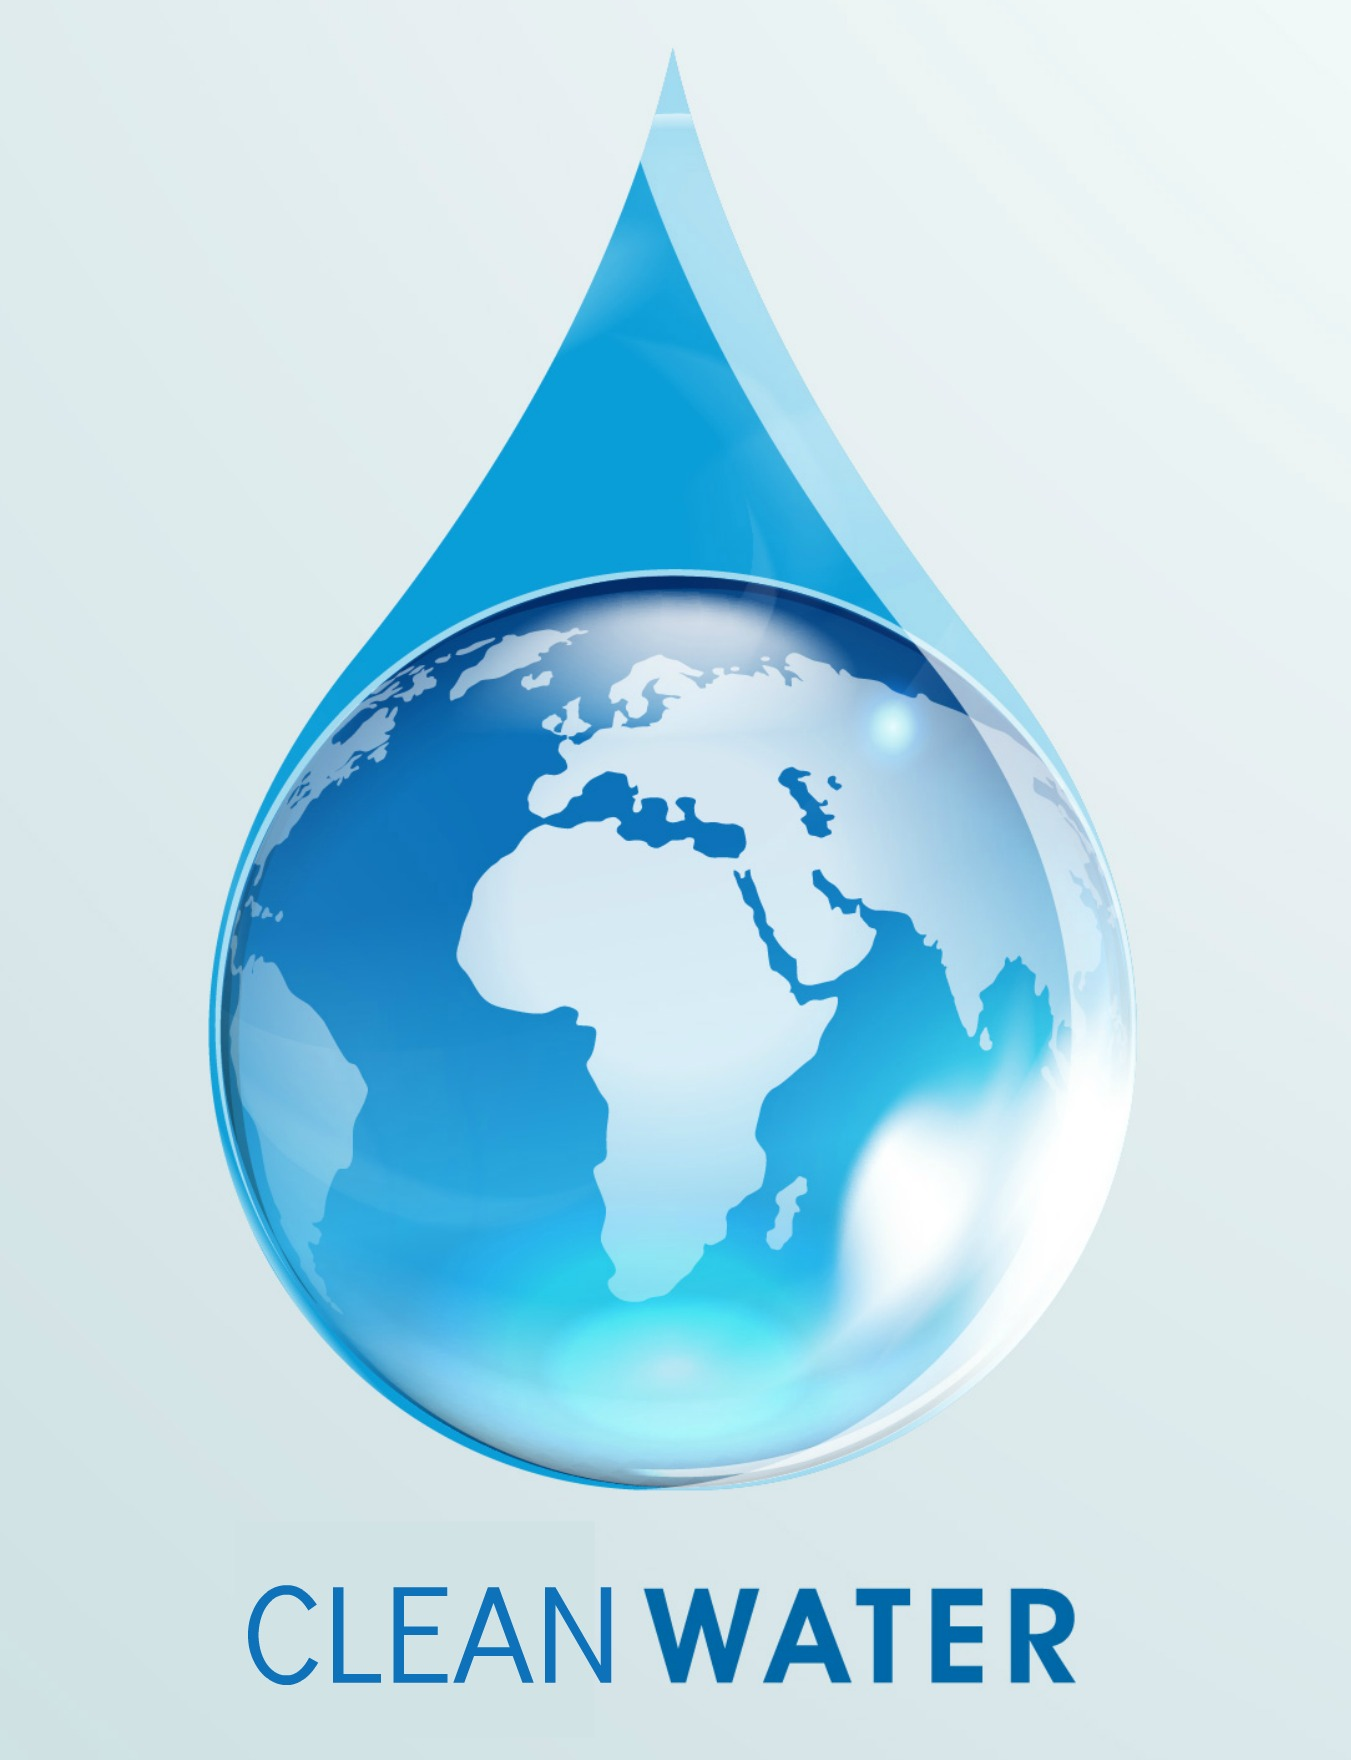 Clean water photo